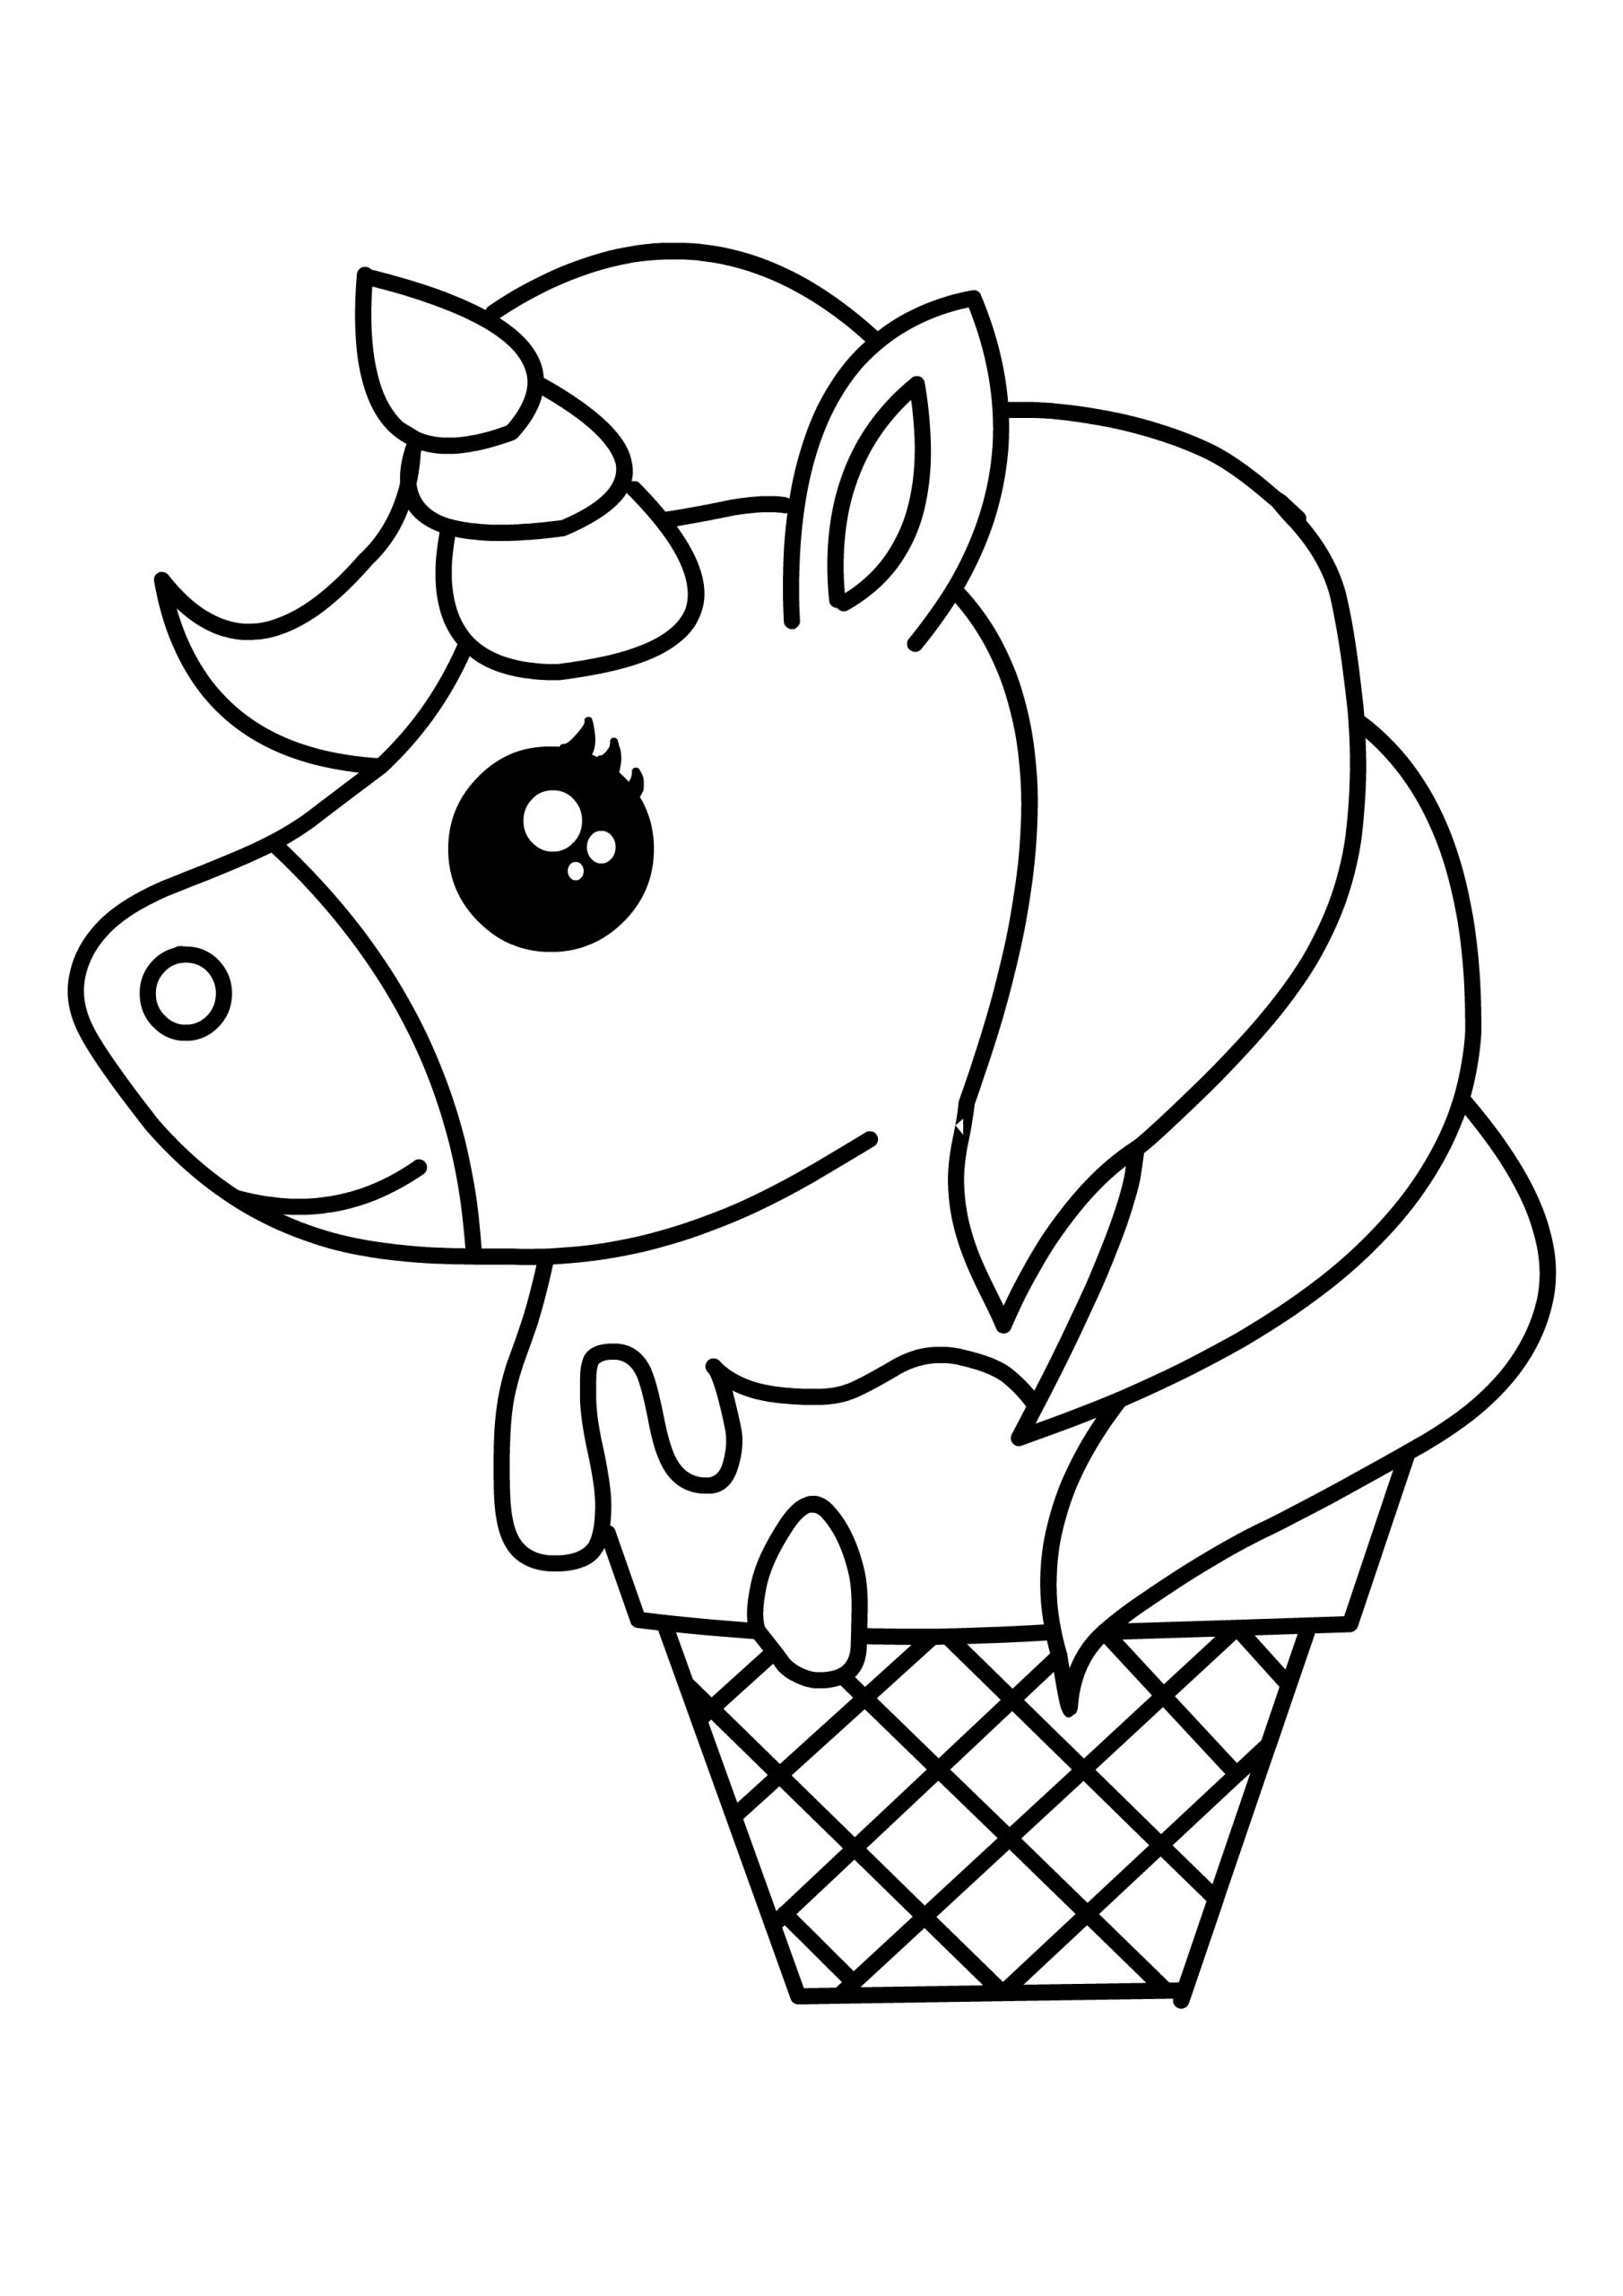 unicorn ice cream coloring pages coloring pages unicorn ice cream coloring pages for kids pages coloring cream unicorn ice